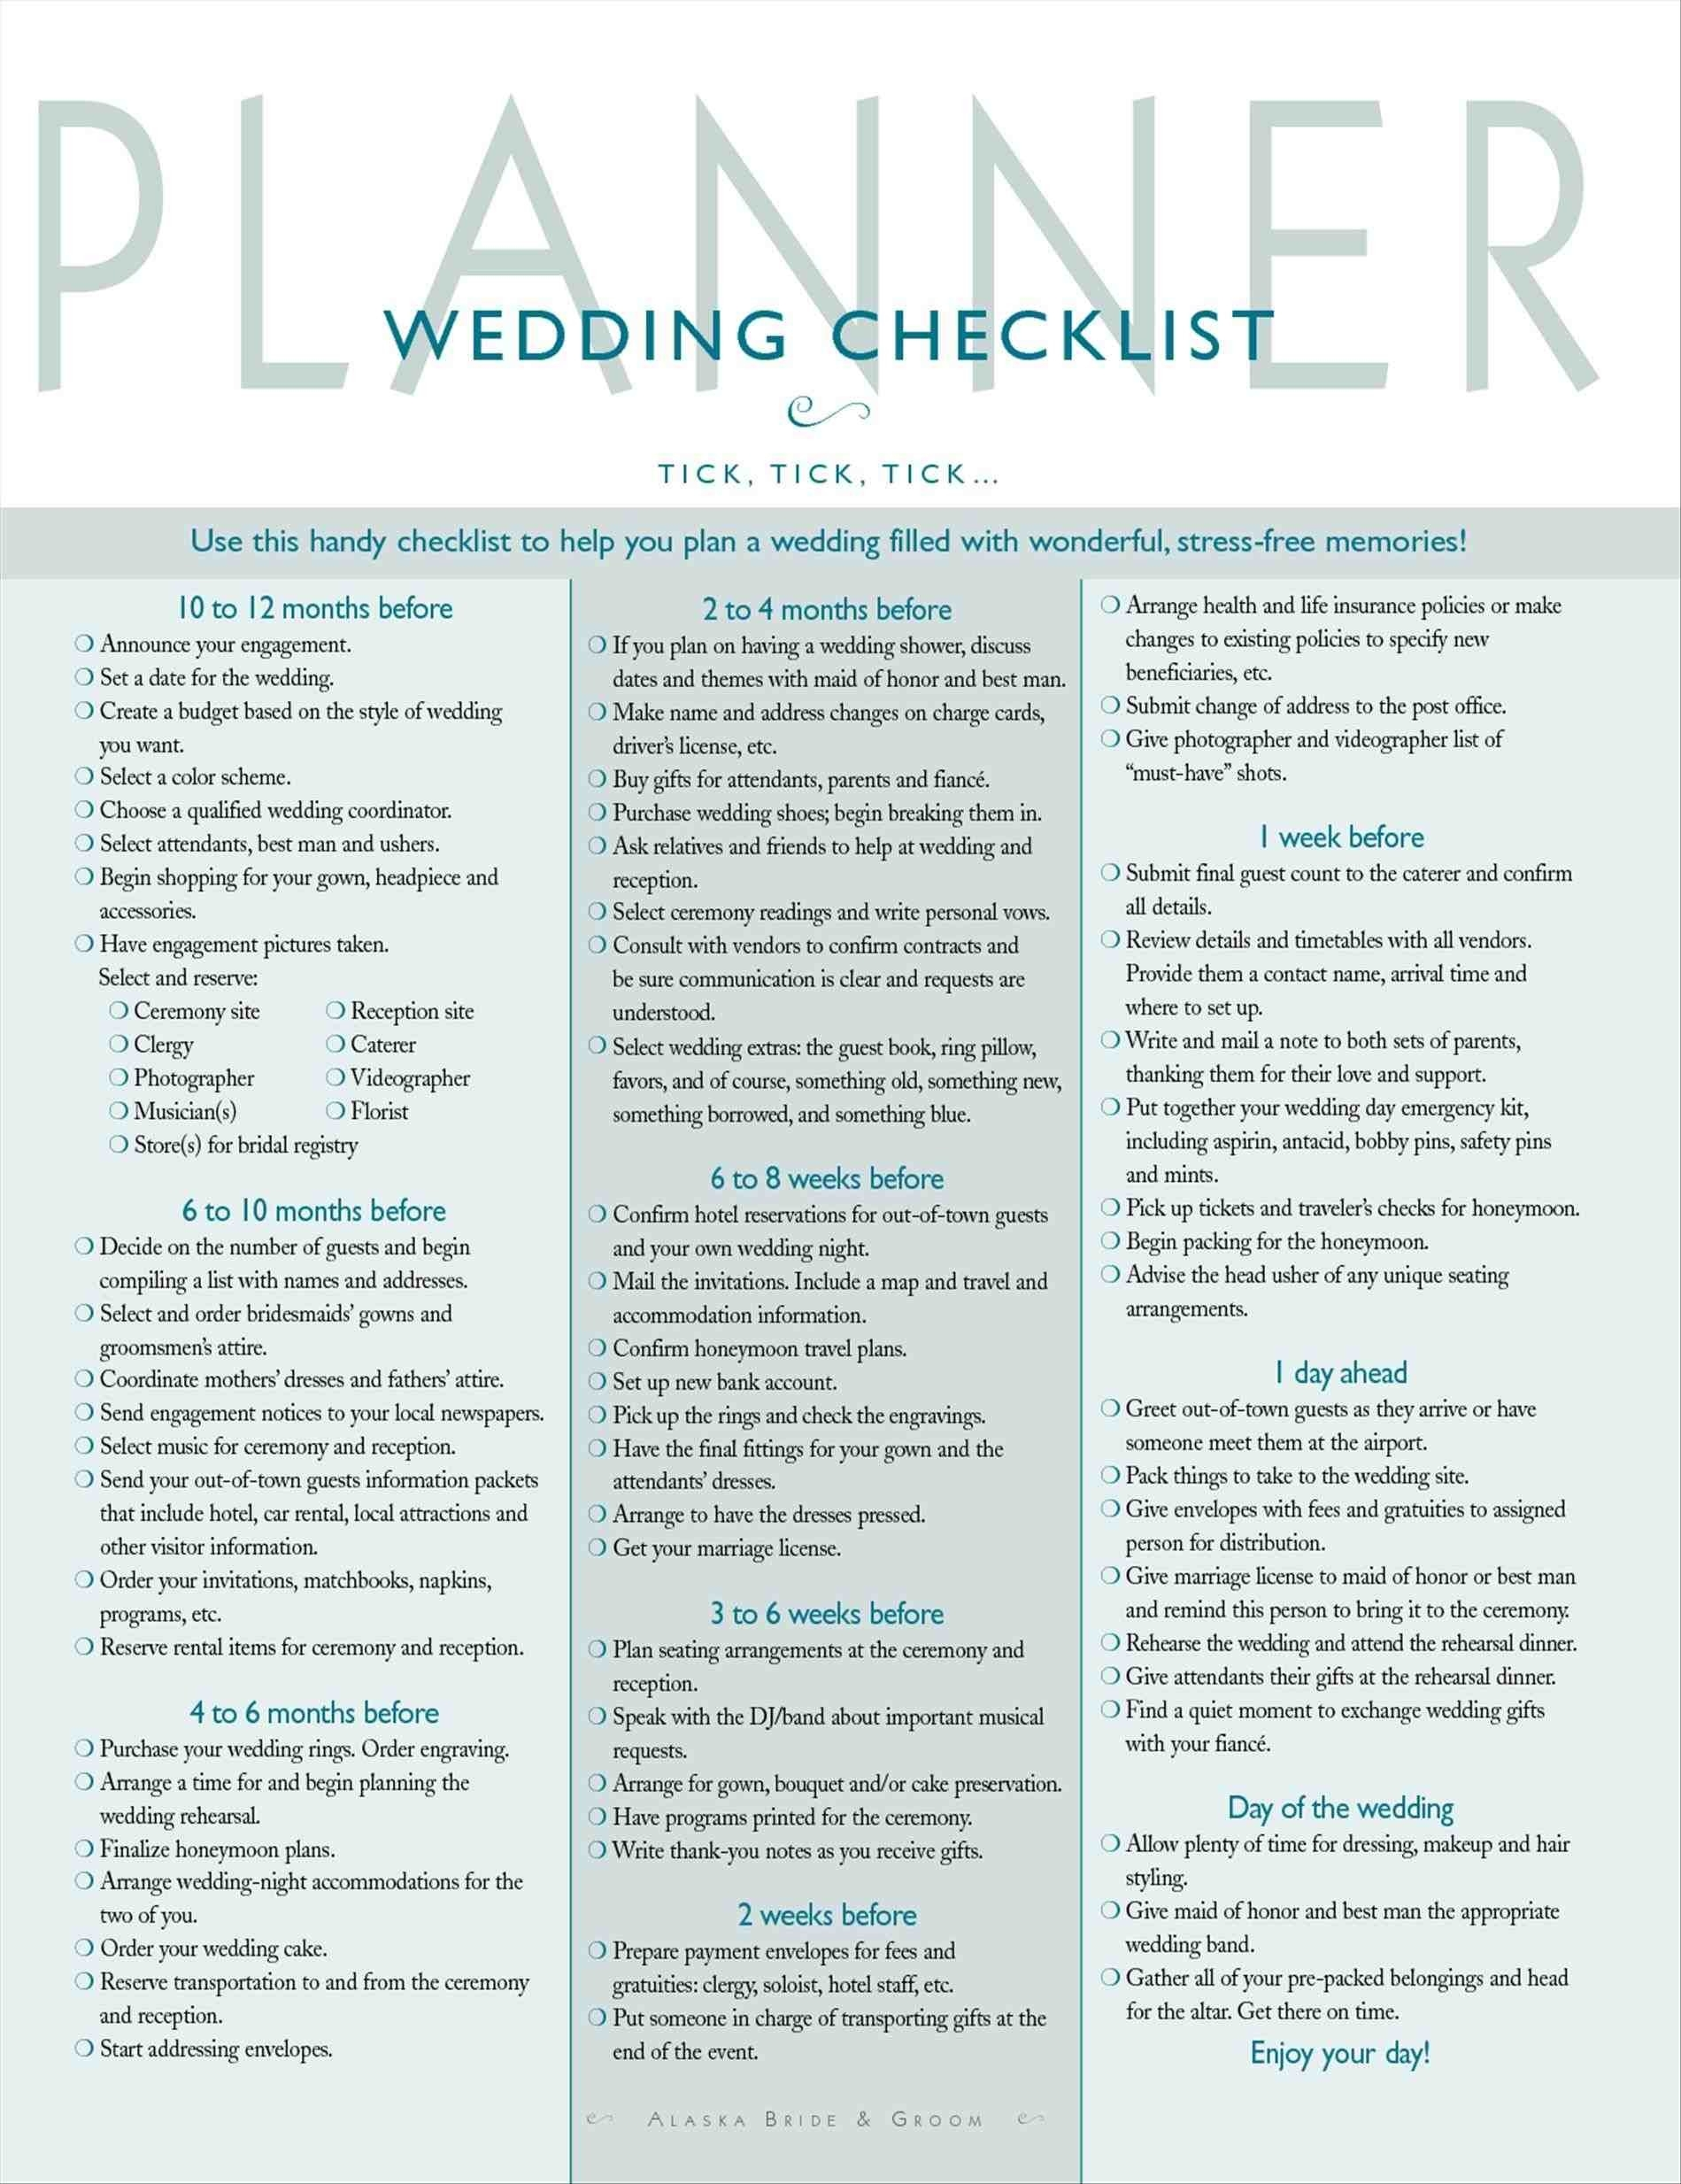 Pose-Photography-Printable-Wedding-Checklist-The-Knot-S-Poses-Pose for Printable Wedding Checklist The Knot 25923